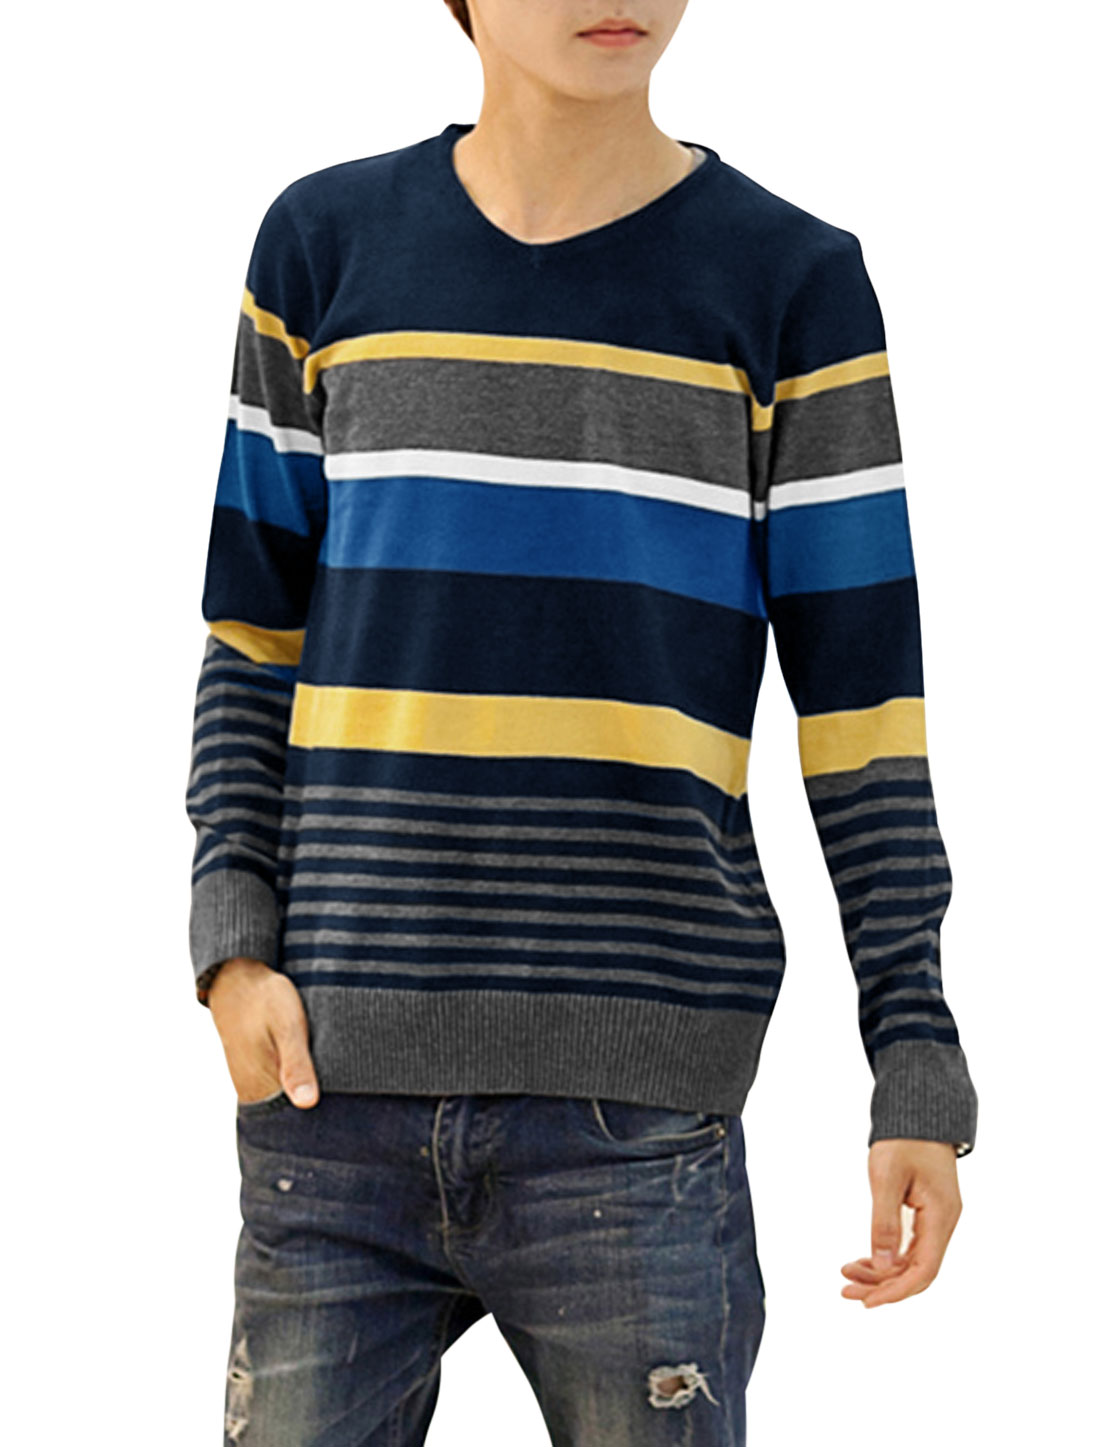 V Neck Color Blocking Pullover Casual Knit Top for Men Navy Blue Dark Gray S